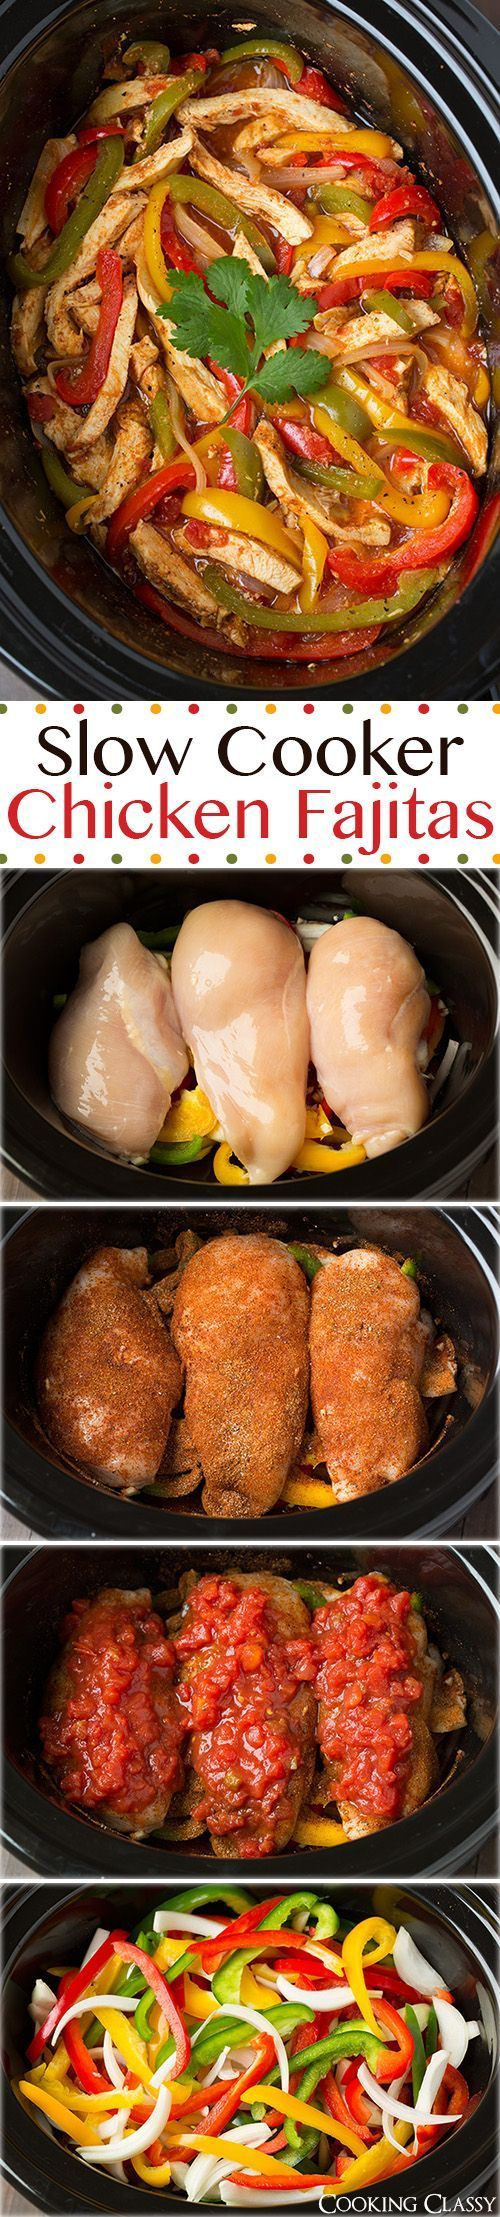 Food and Drink: Slow Cooker Chicken Fajitas - Cooking Classy http://eatdojo.com/easy-healthy-crockpot-recipes-cheap-meals/